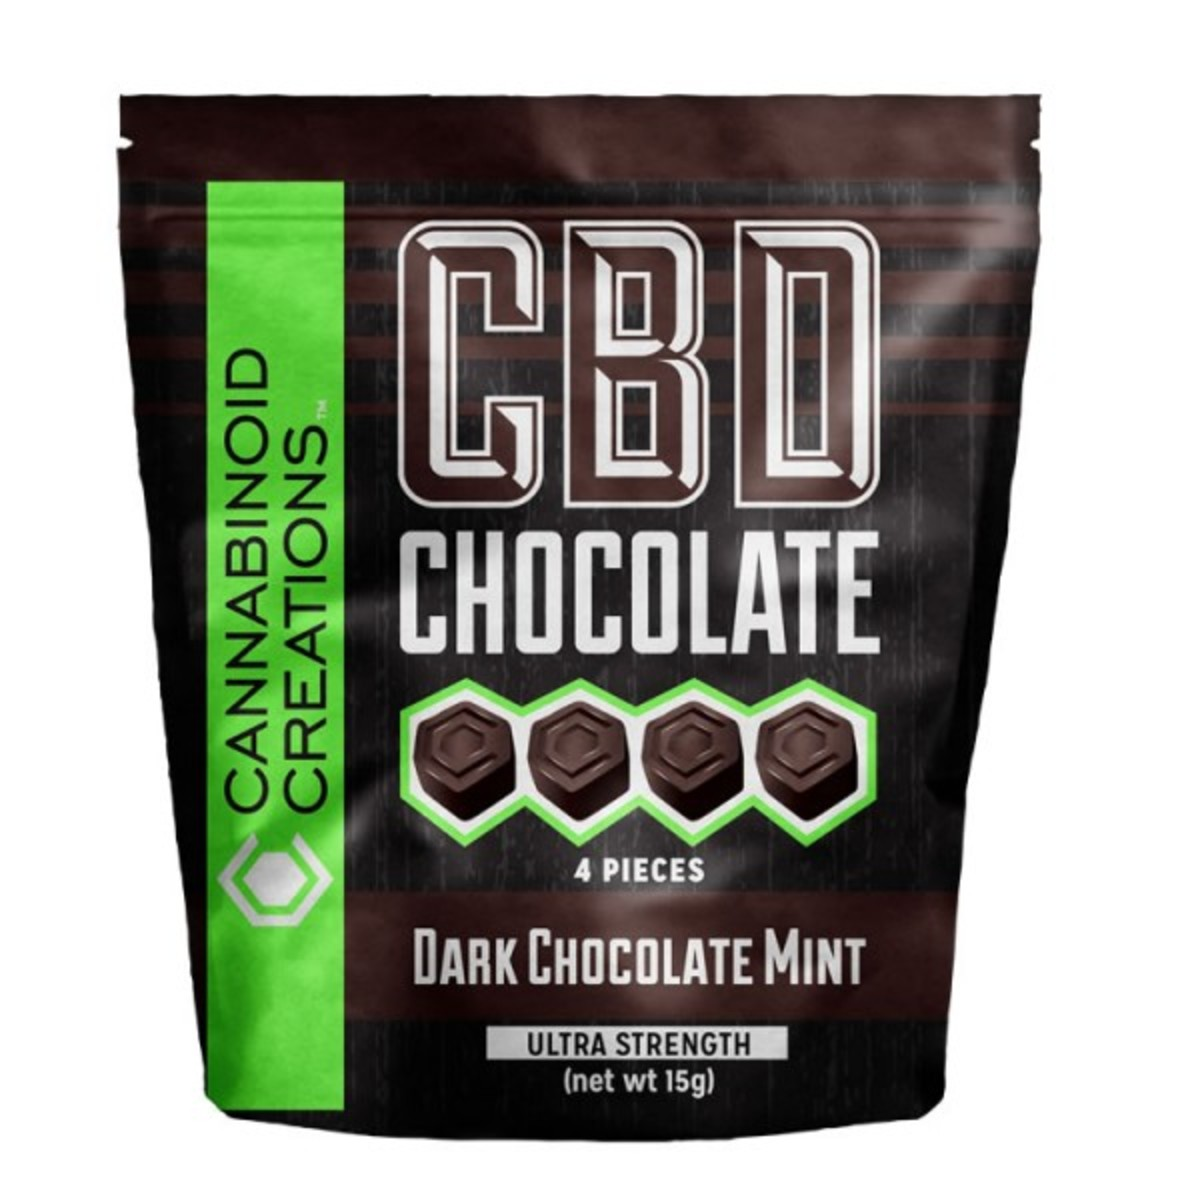 CBD-Dark-Chocolate-Mint-Bag-2-600x600